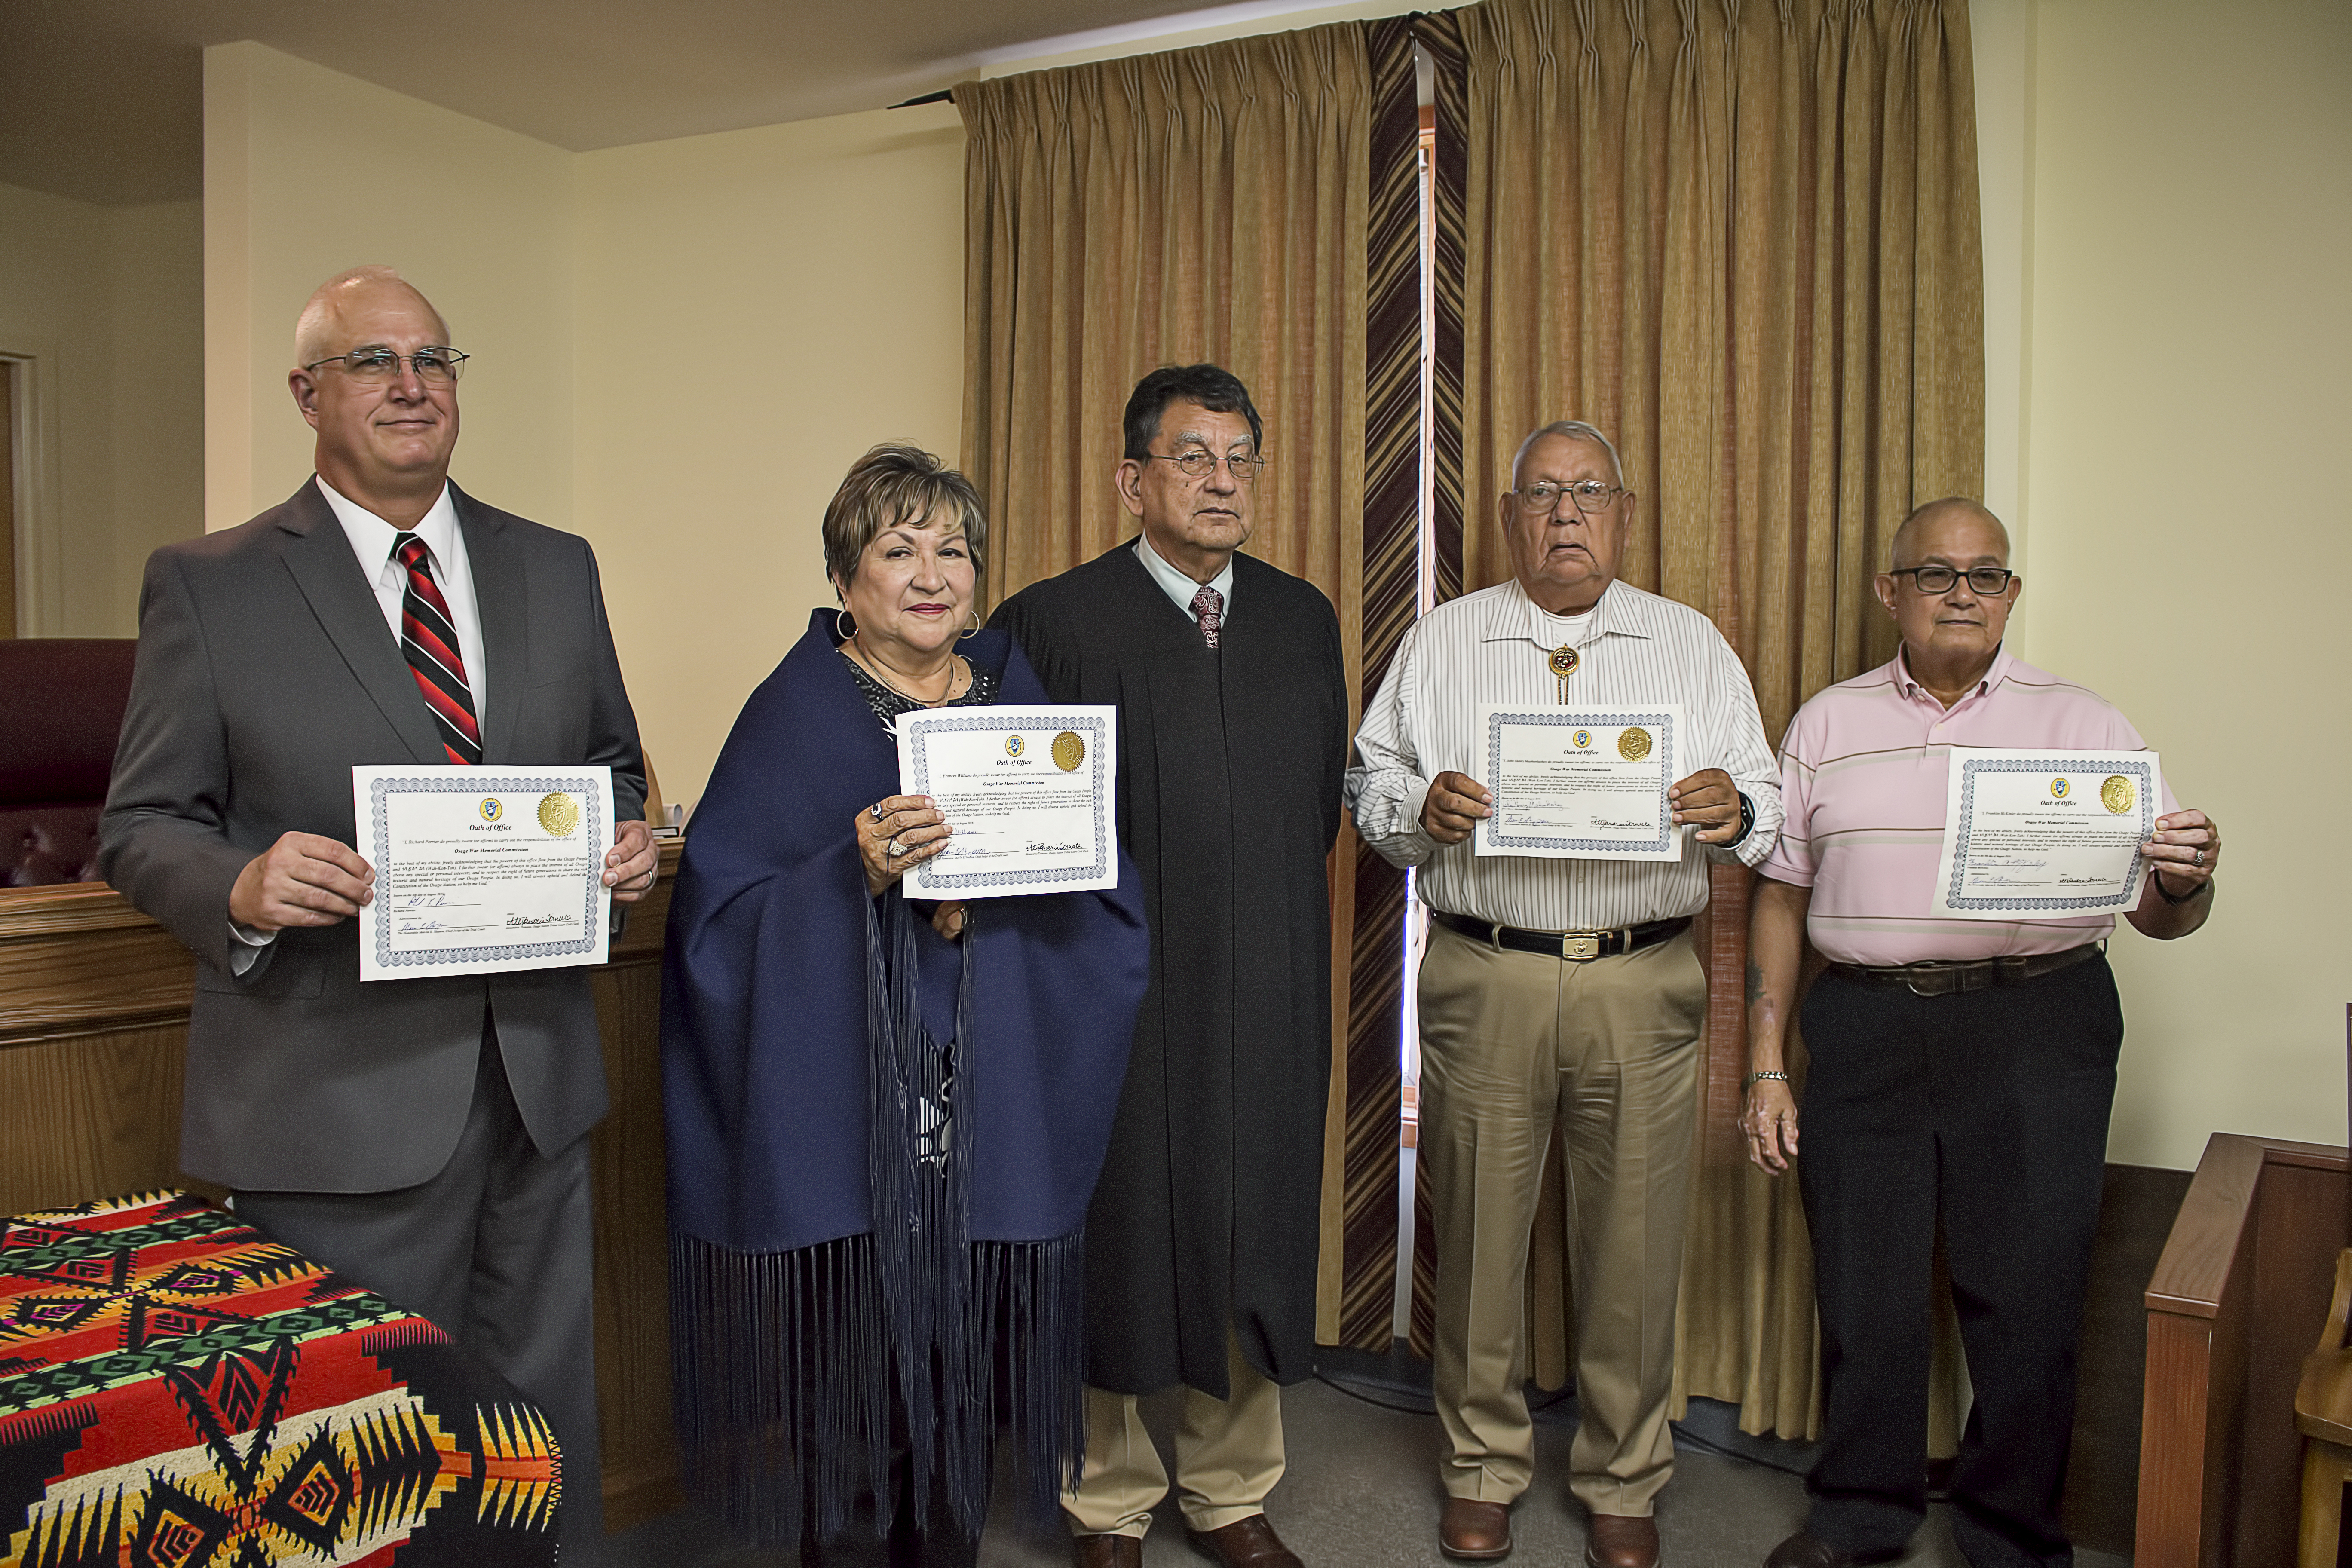 Osage War Memorial Commission members take their oaths